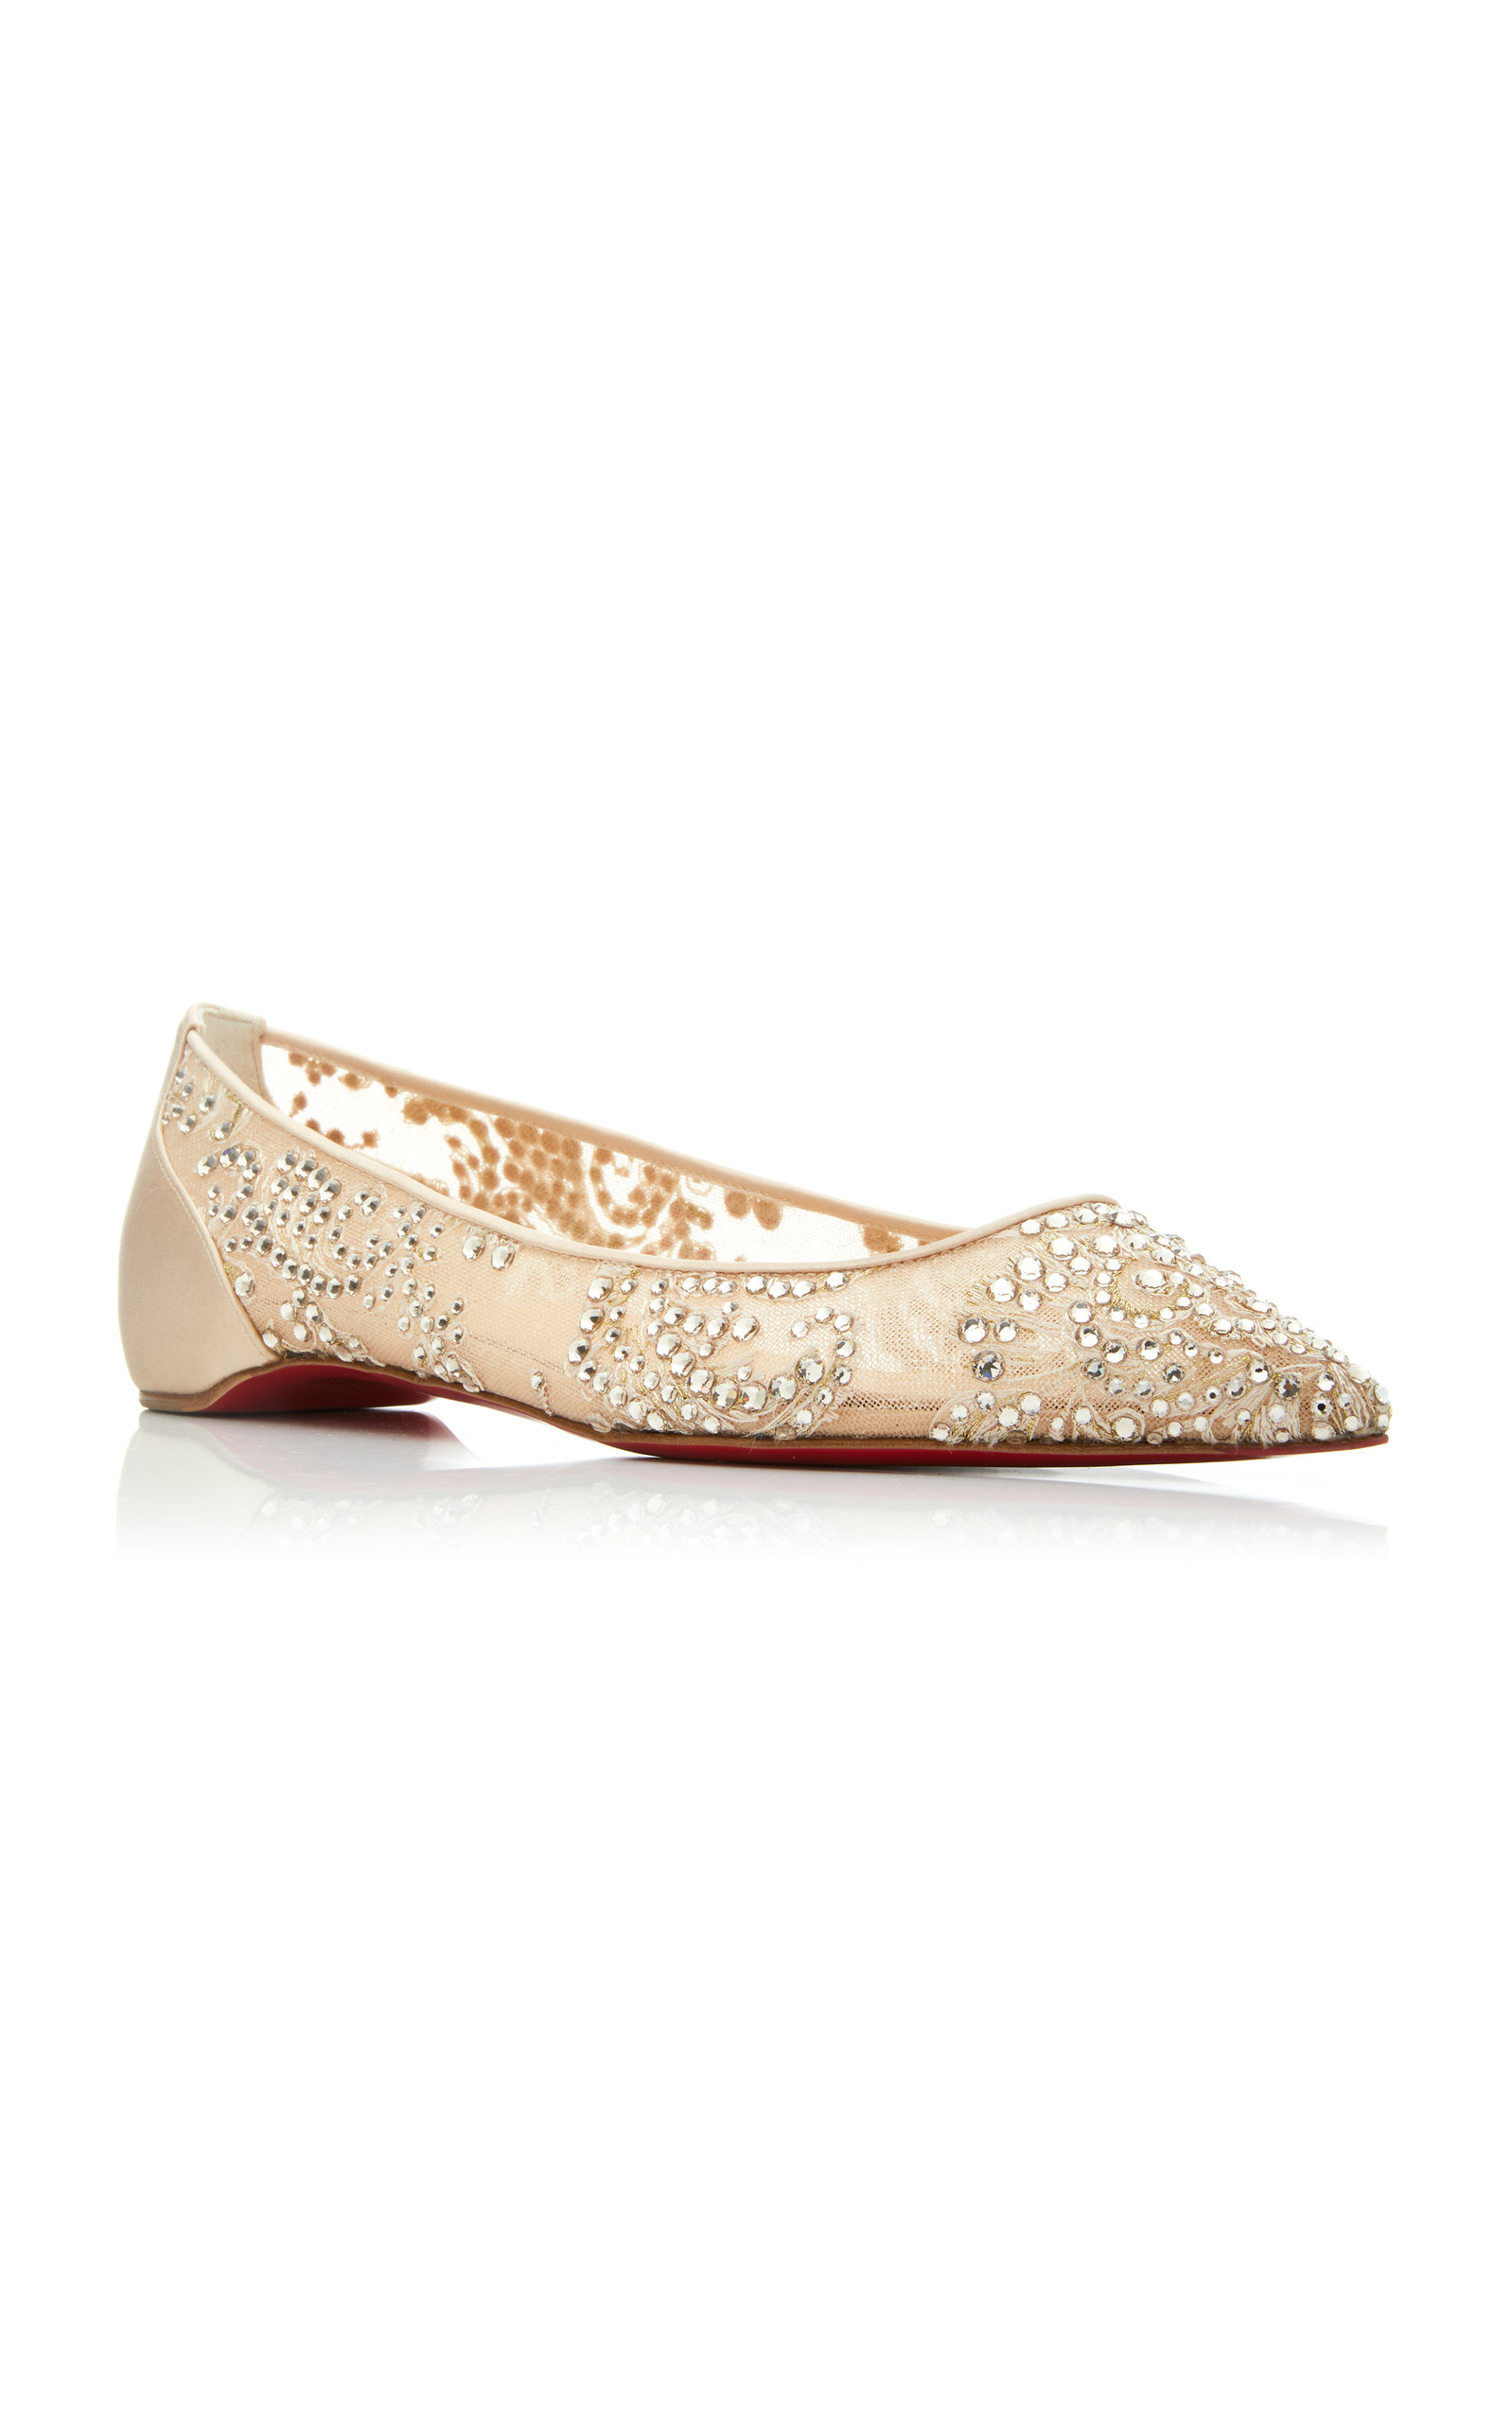 0268519dd5f Exclusive Follies Embellished Mesh Point-Toe Flats